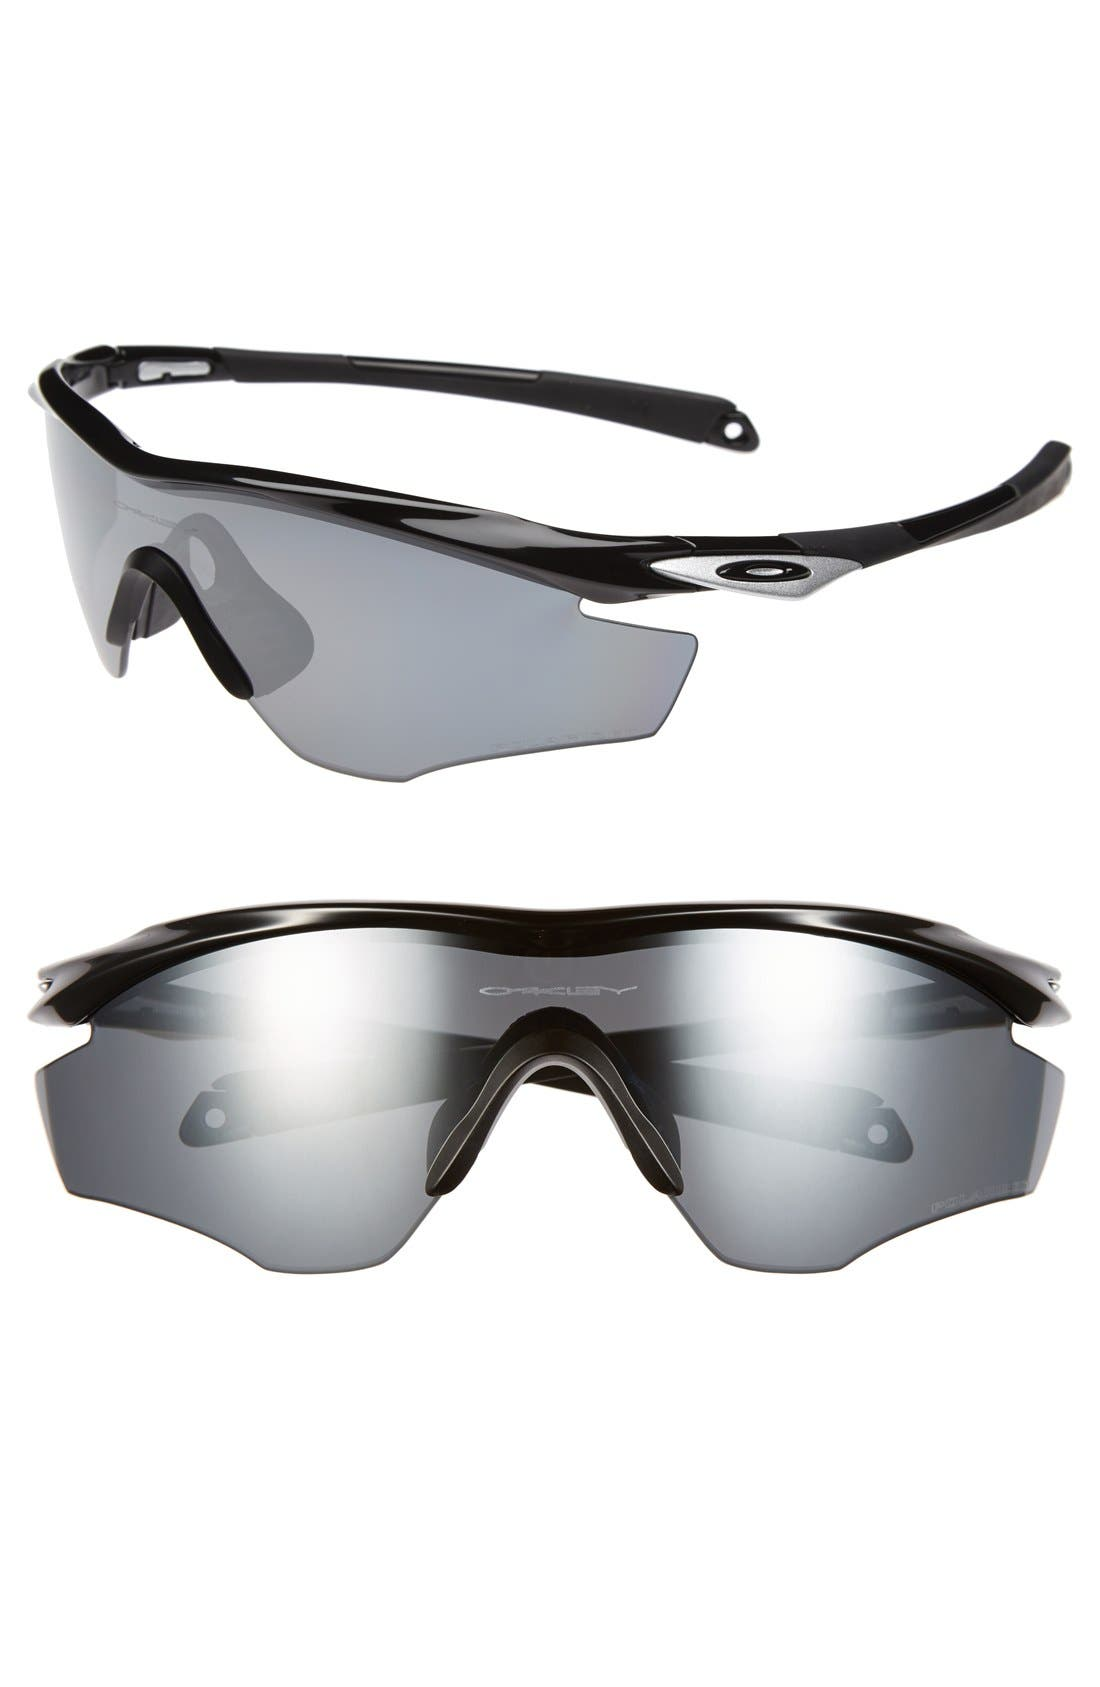 Alternate Image 1 Selected - Oakley 'M2 Frame' 175mm Polarized Shield Sunglasses